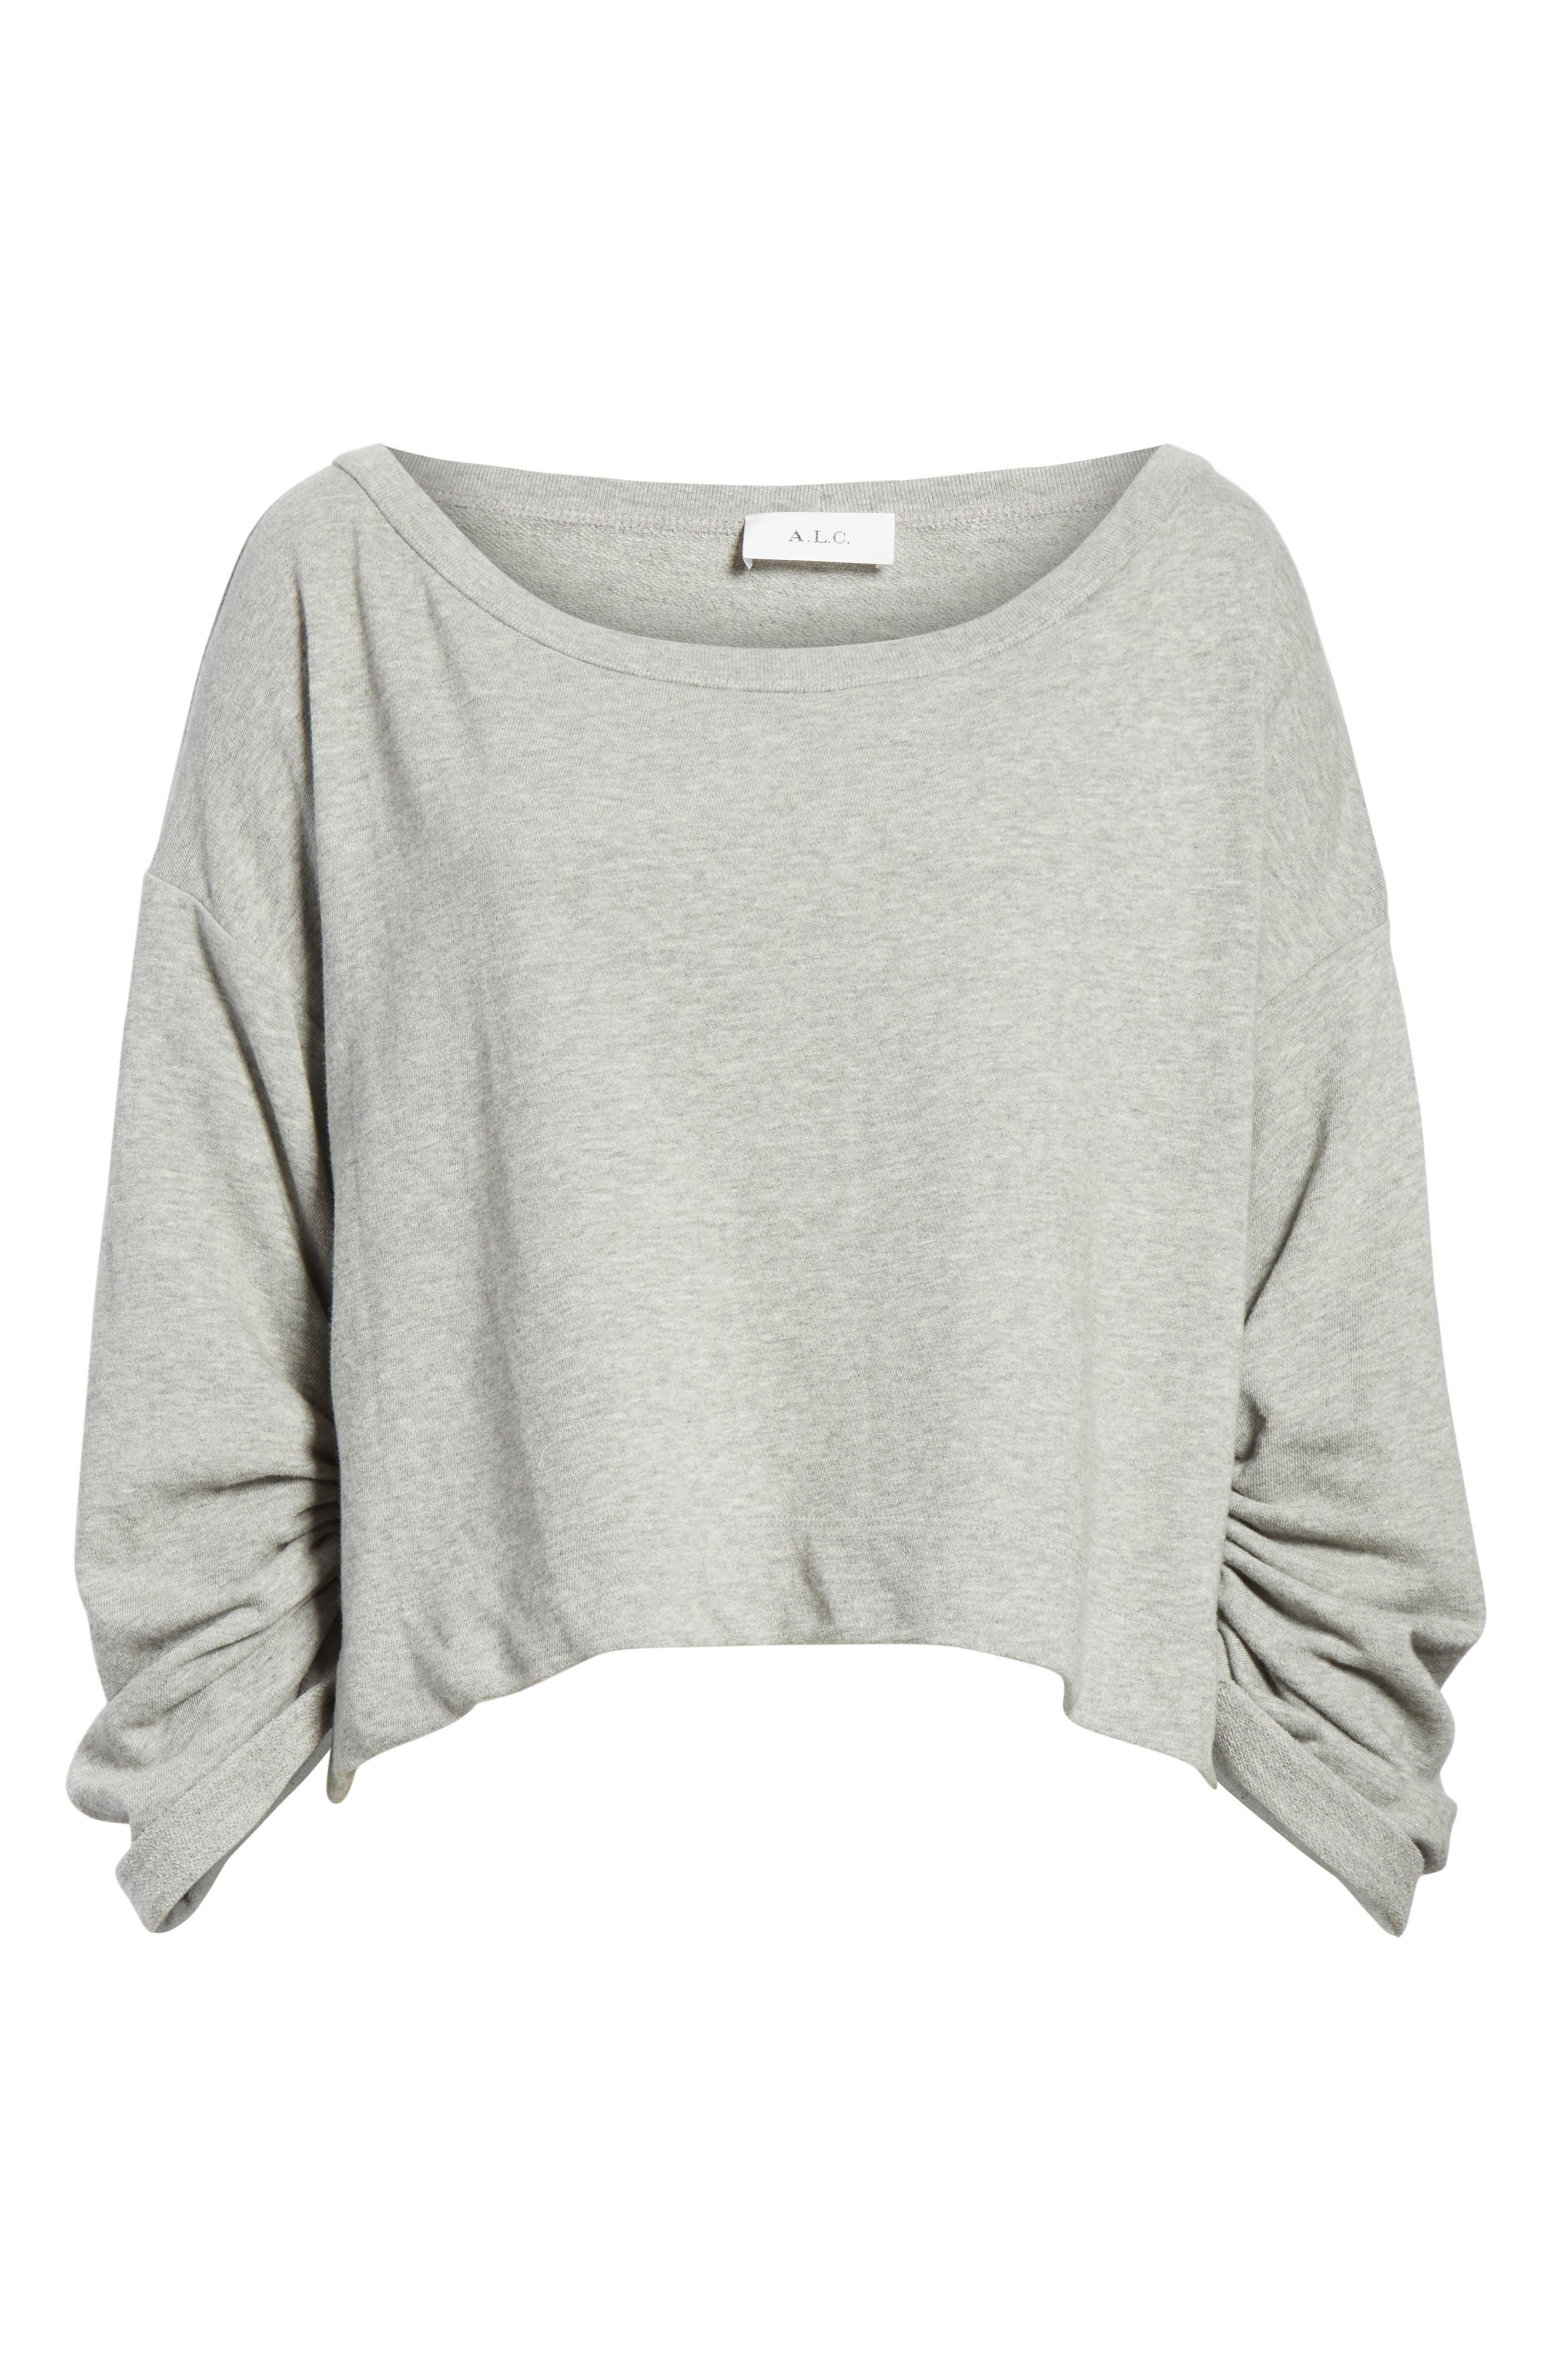 Ember Ruched Sleeve Sweatshirt,                             Alternate thumbnail 6, color,                             Heather Grey